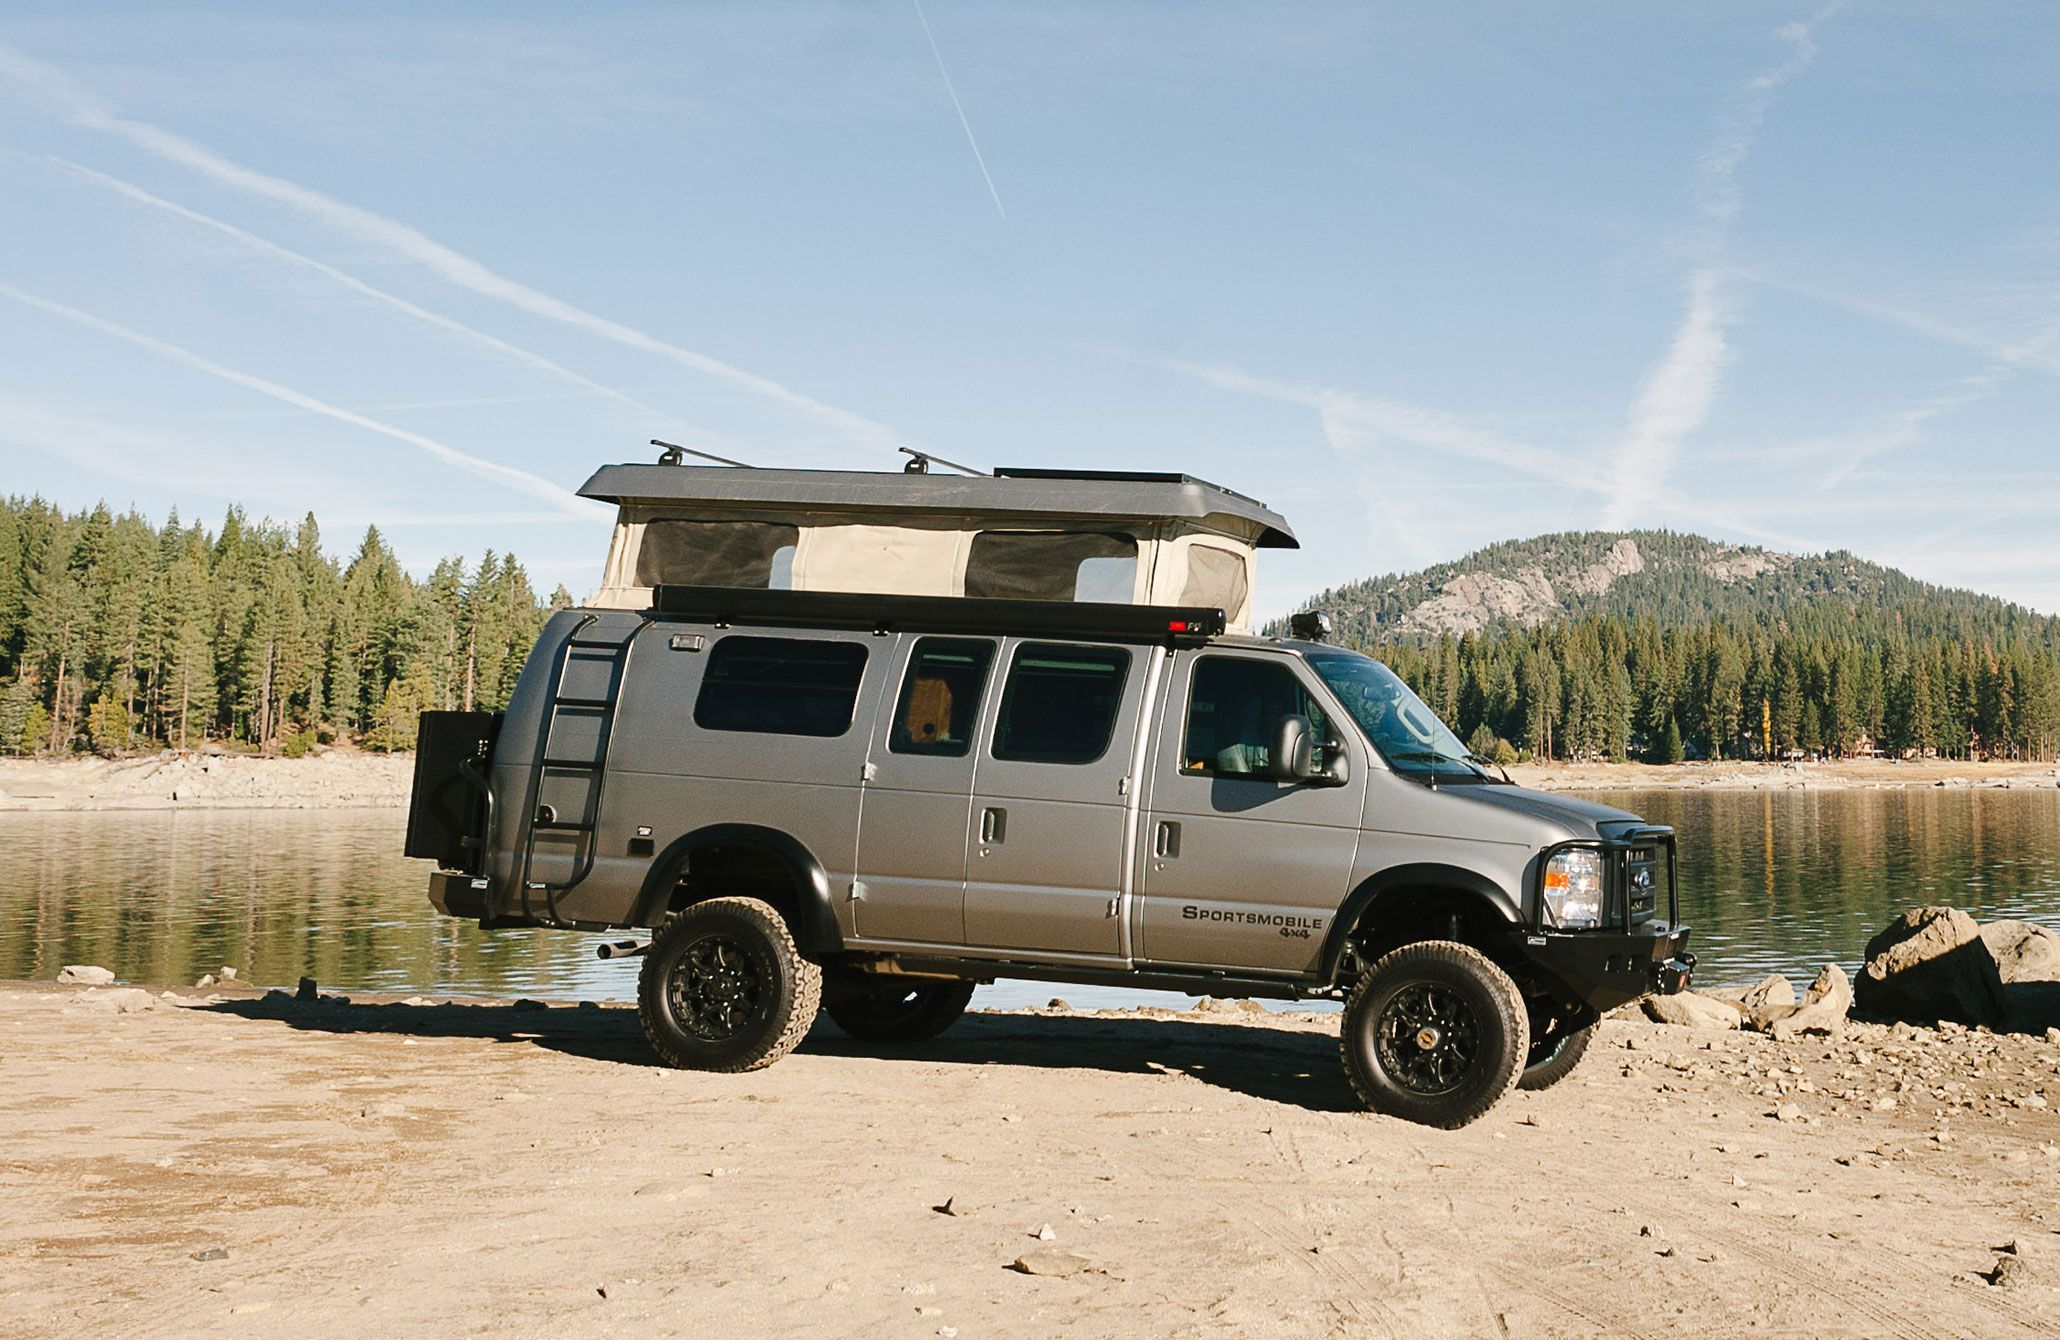 2015 Sportsmobile Ford E350 Classic Roof Top Penthouse Open...Aluminess gear all around!